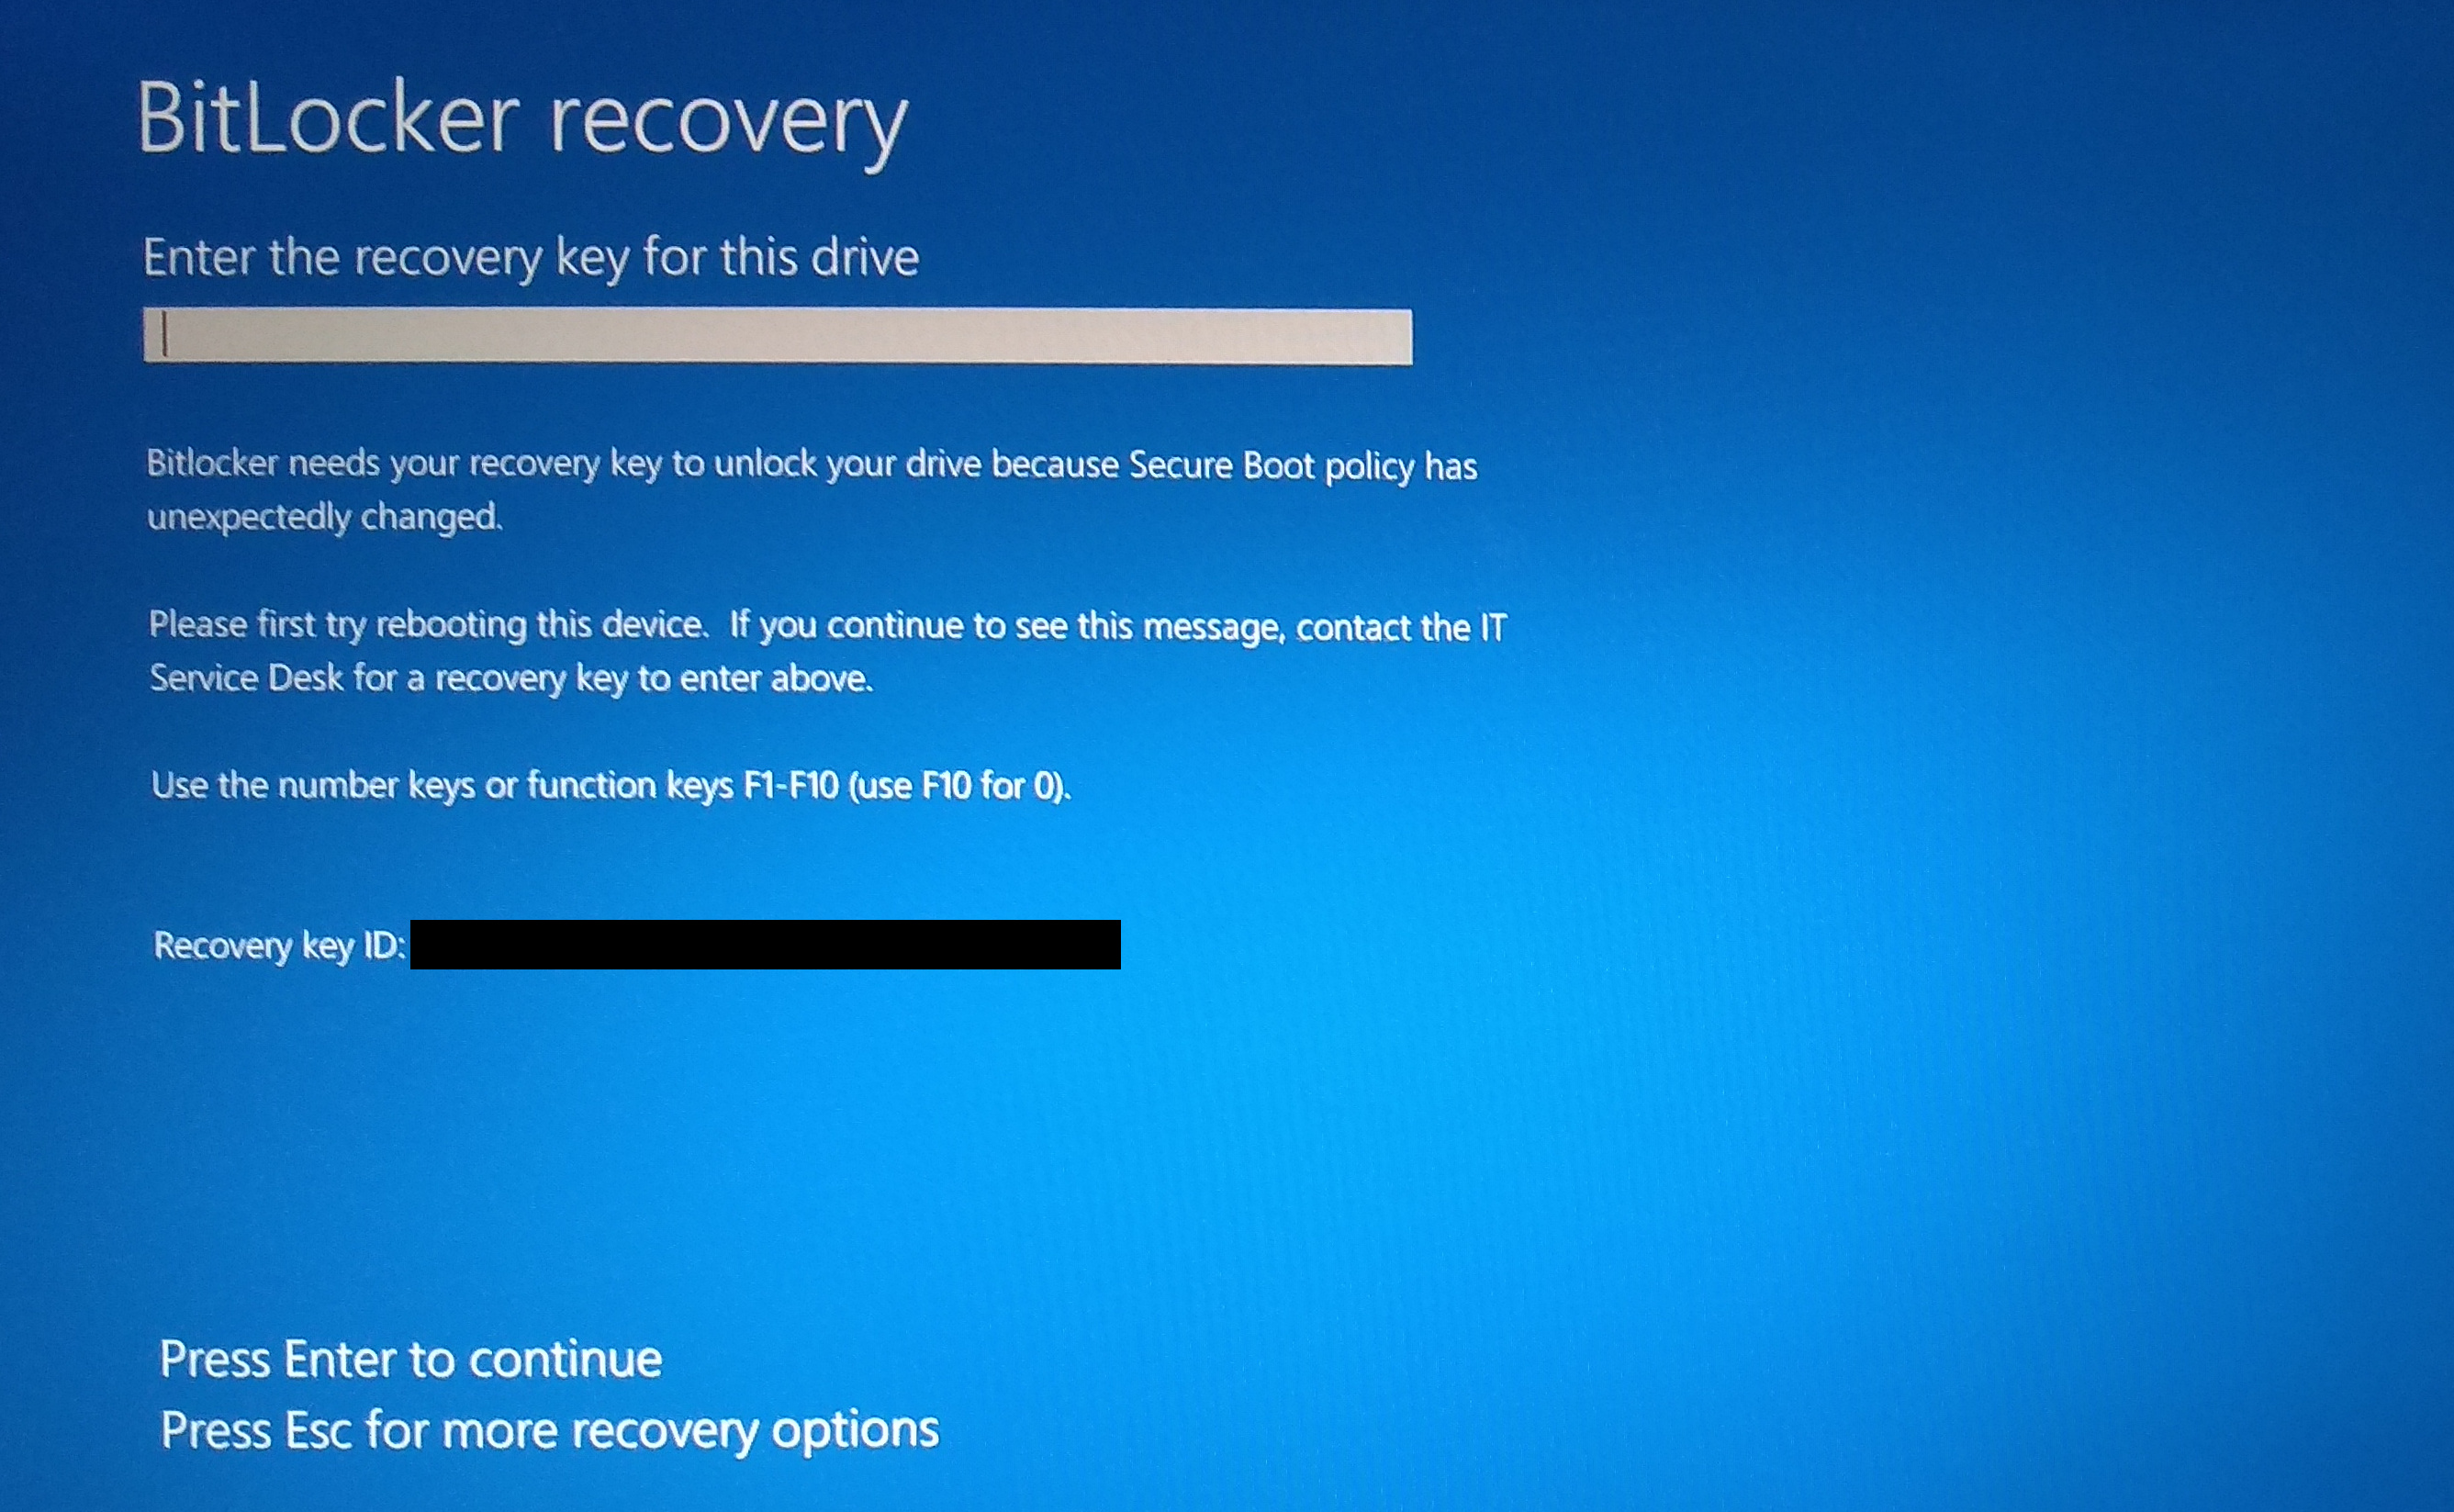 BitLocker prompts for the recovery key after re-enabling Secure Boot